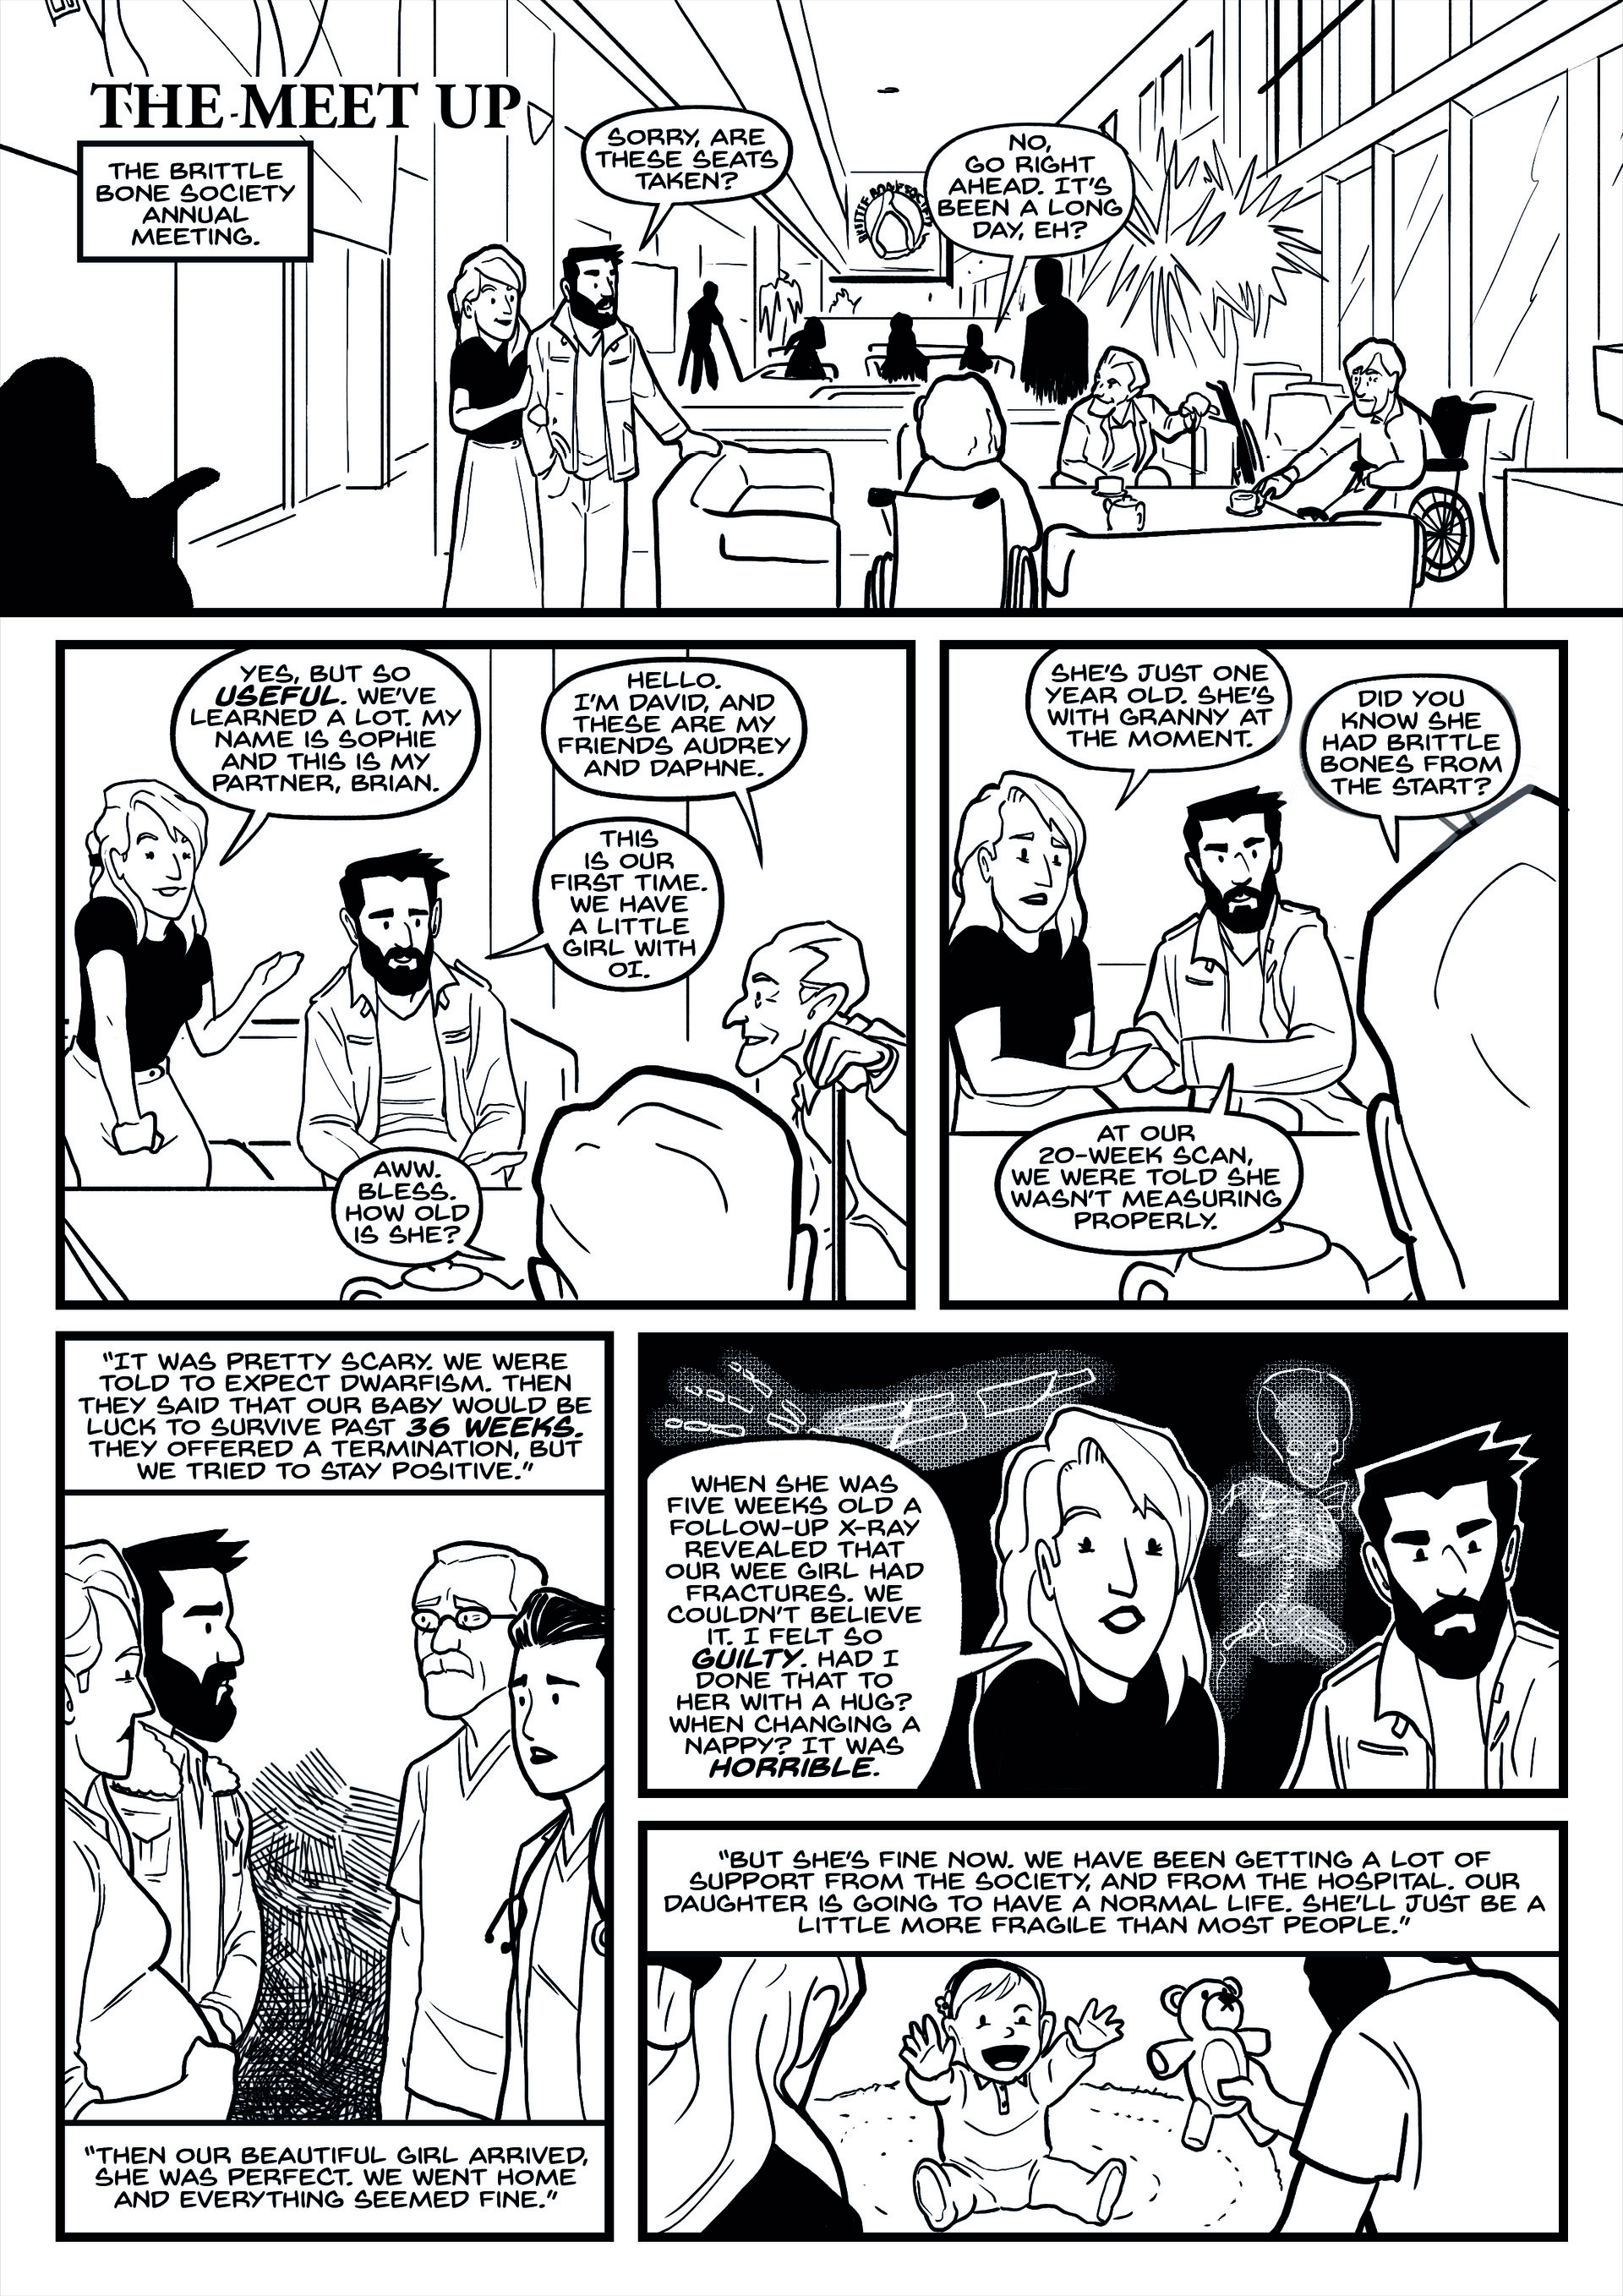 Elliot balson brittle bone society comic2 page1